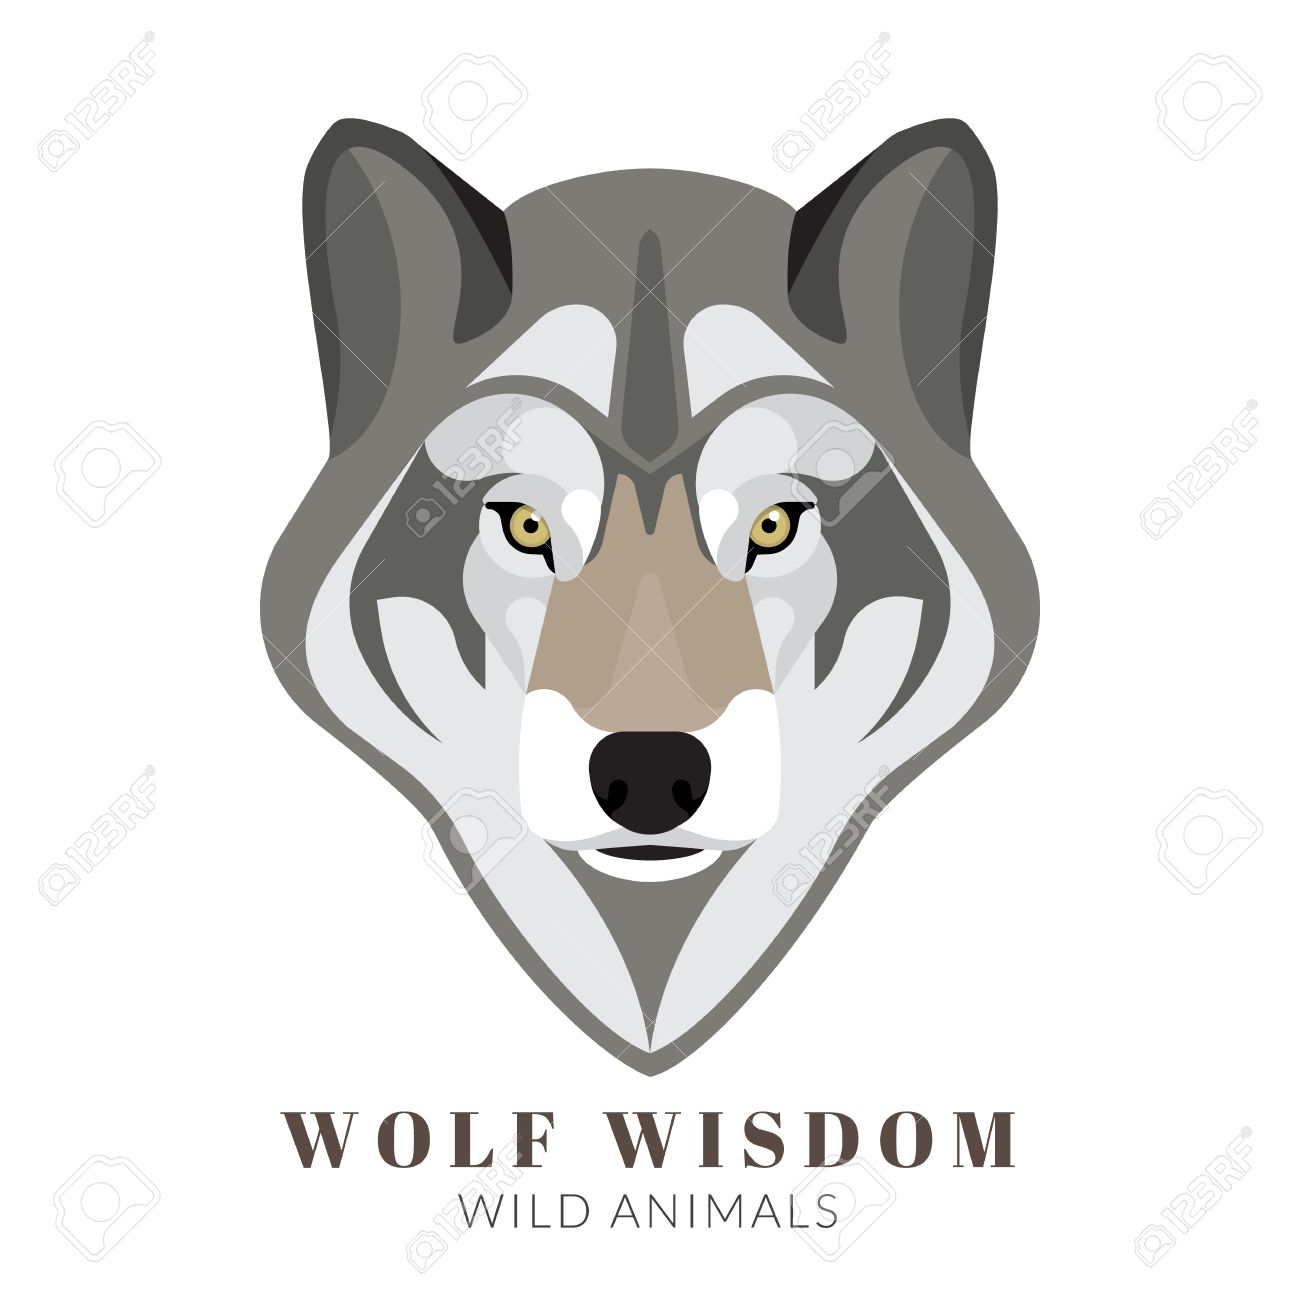 Cute wolf illustration